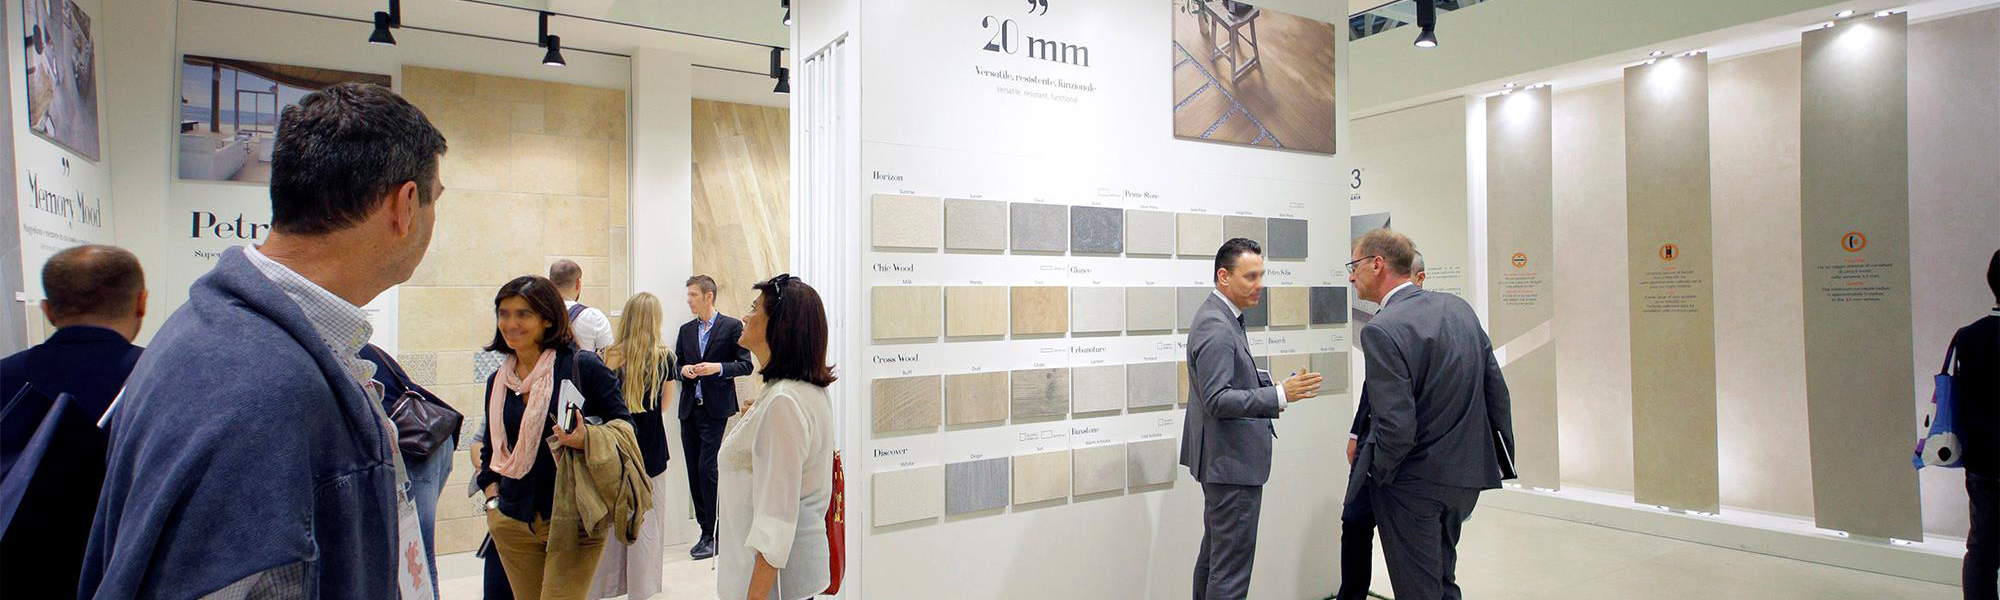 Panaria at Cersaie 2017